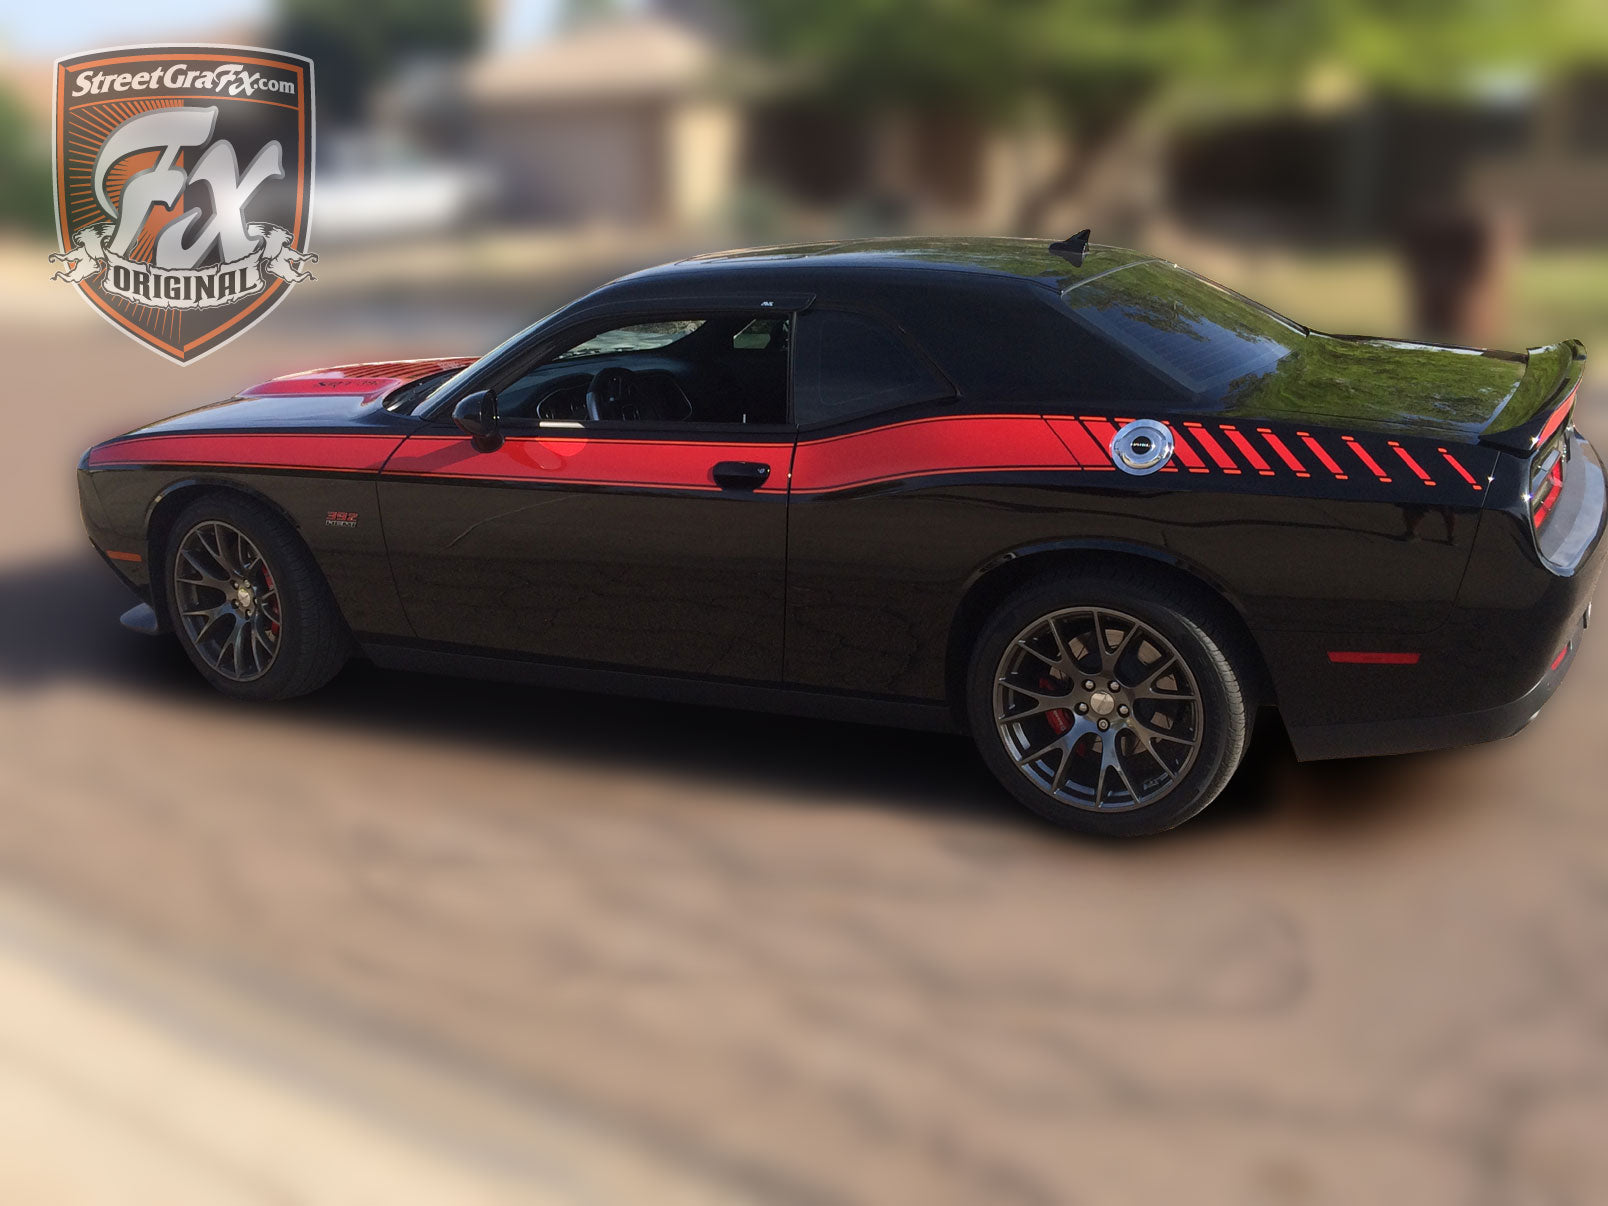 Dodge Charger Rt For Sale >> Dodge Challenger Stripes, Racing Stripes, R/T Graphics ...